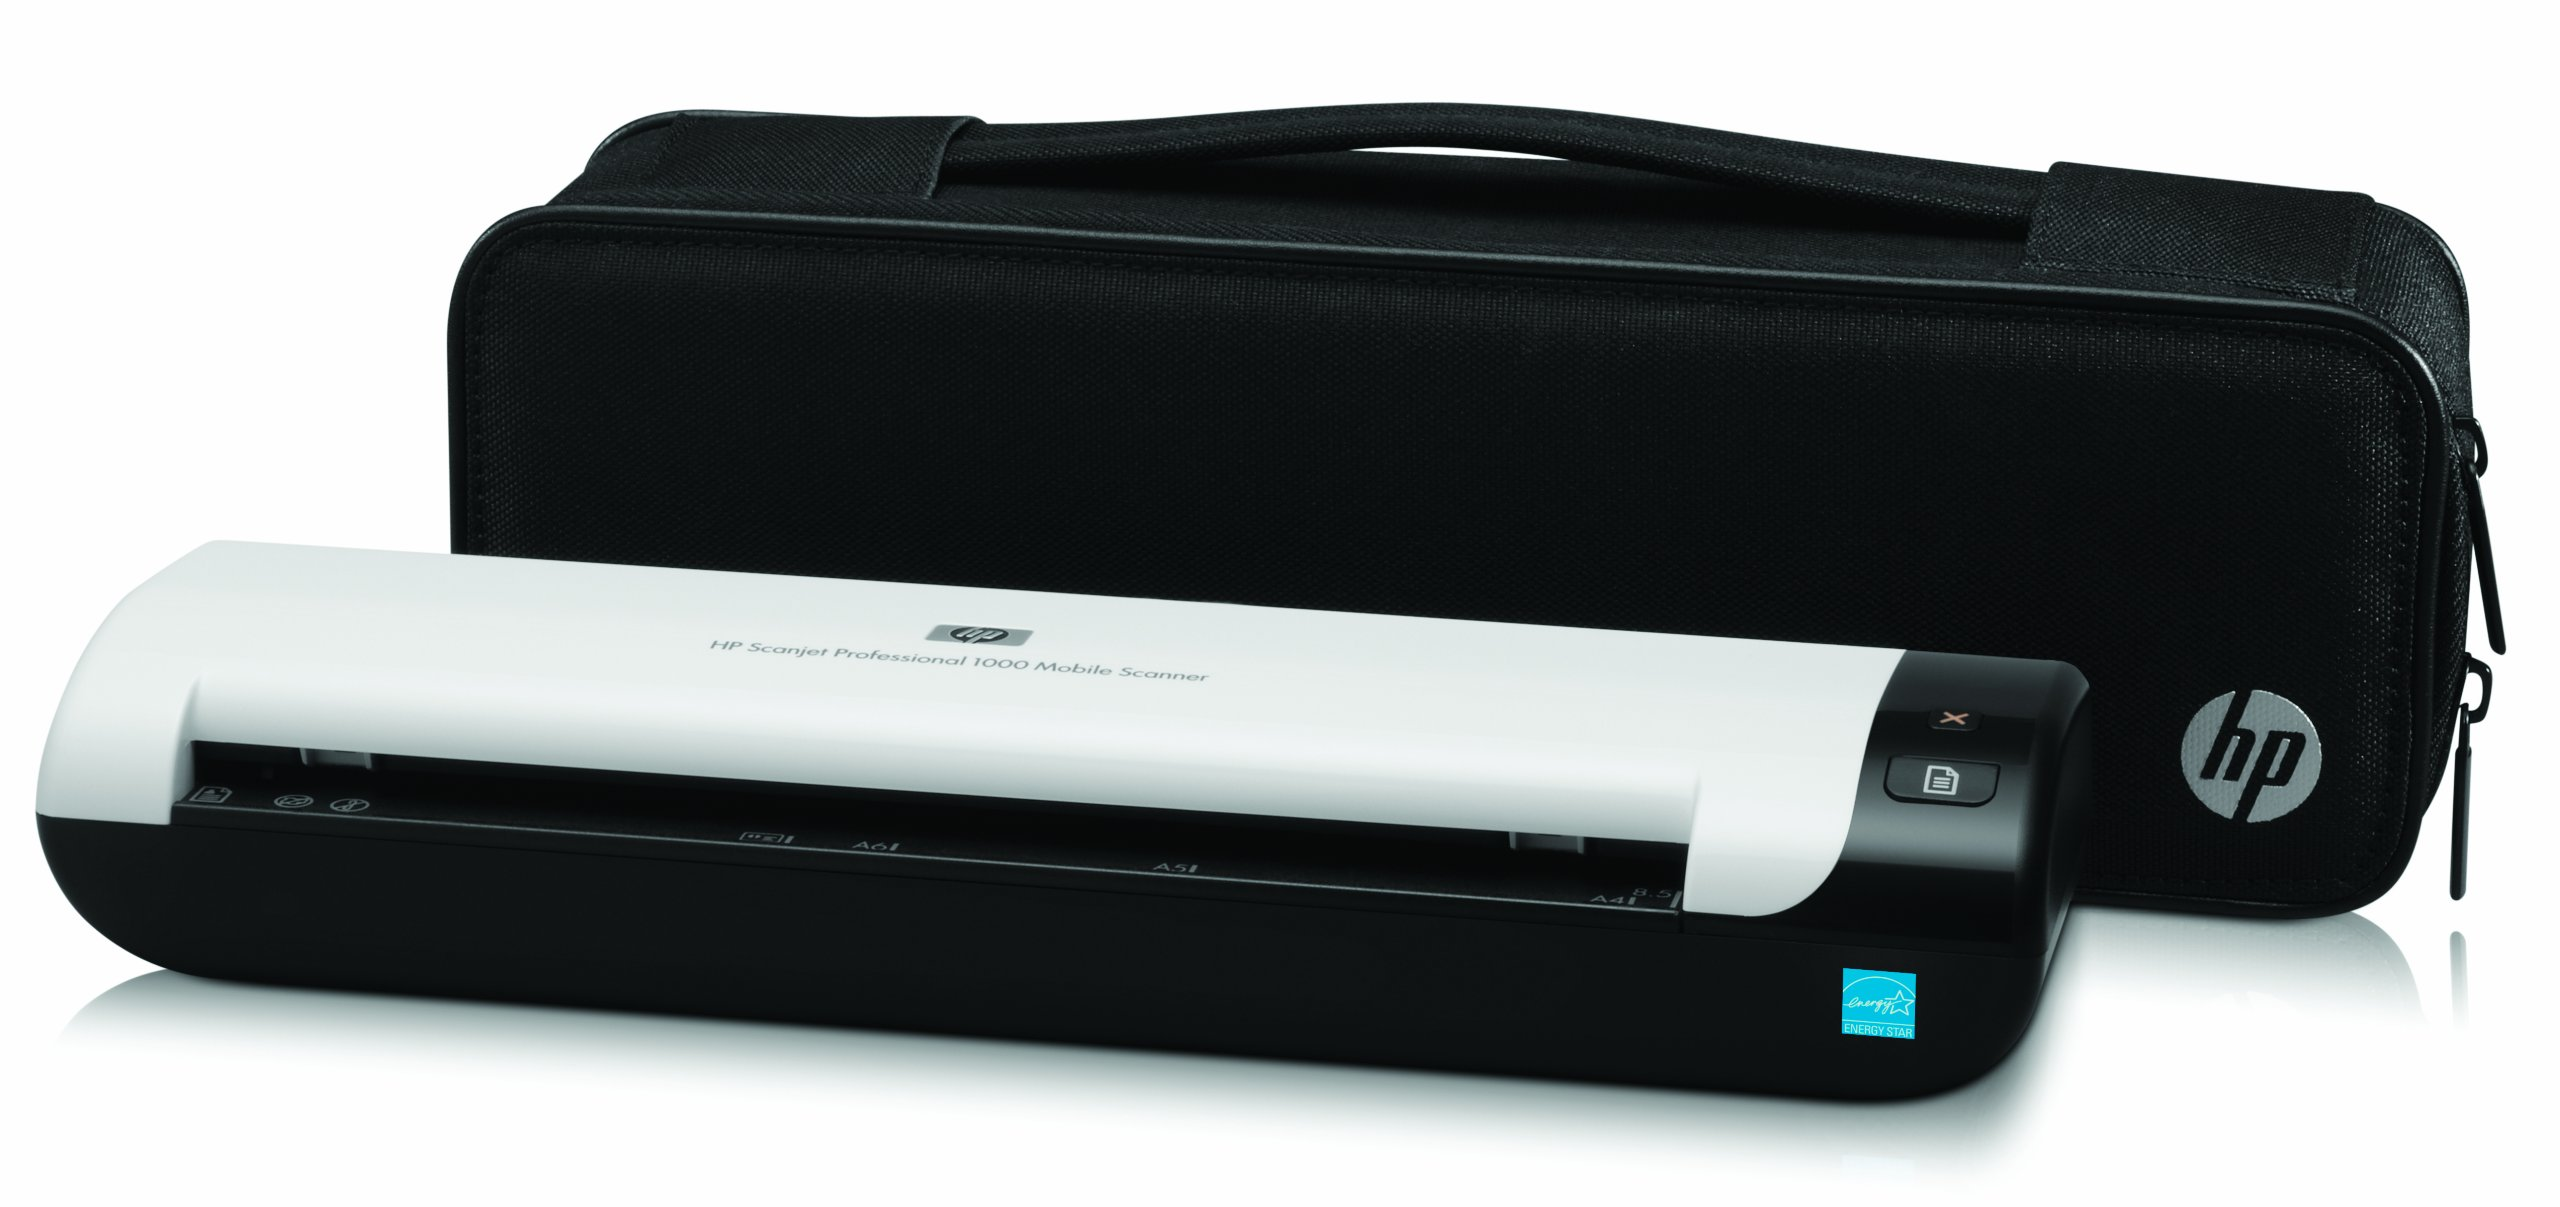 HP Scanjet Professional 1000 Mobile Scanner, (L2722A) by HP (Image #3)